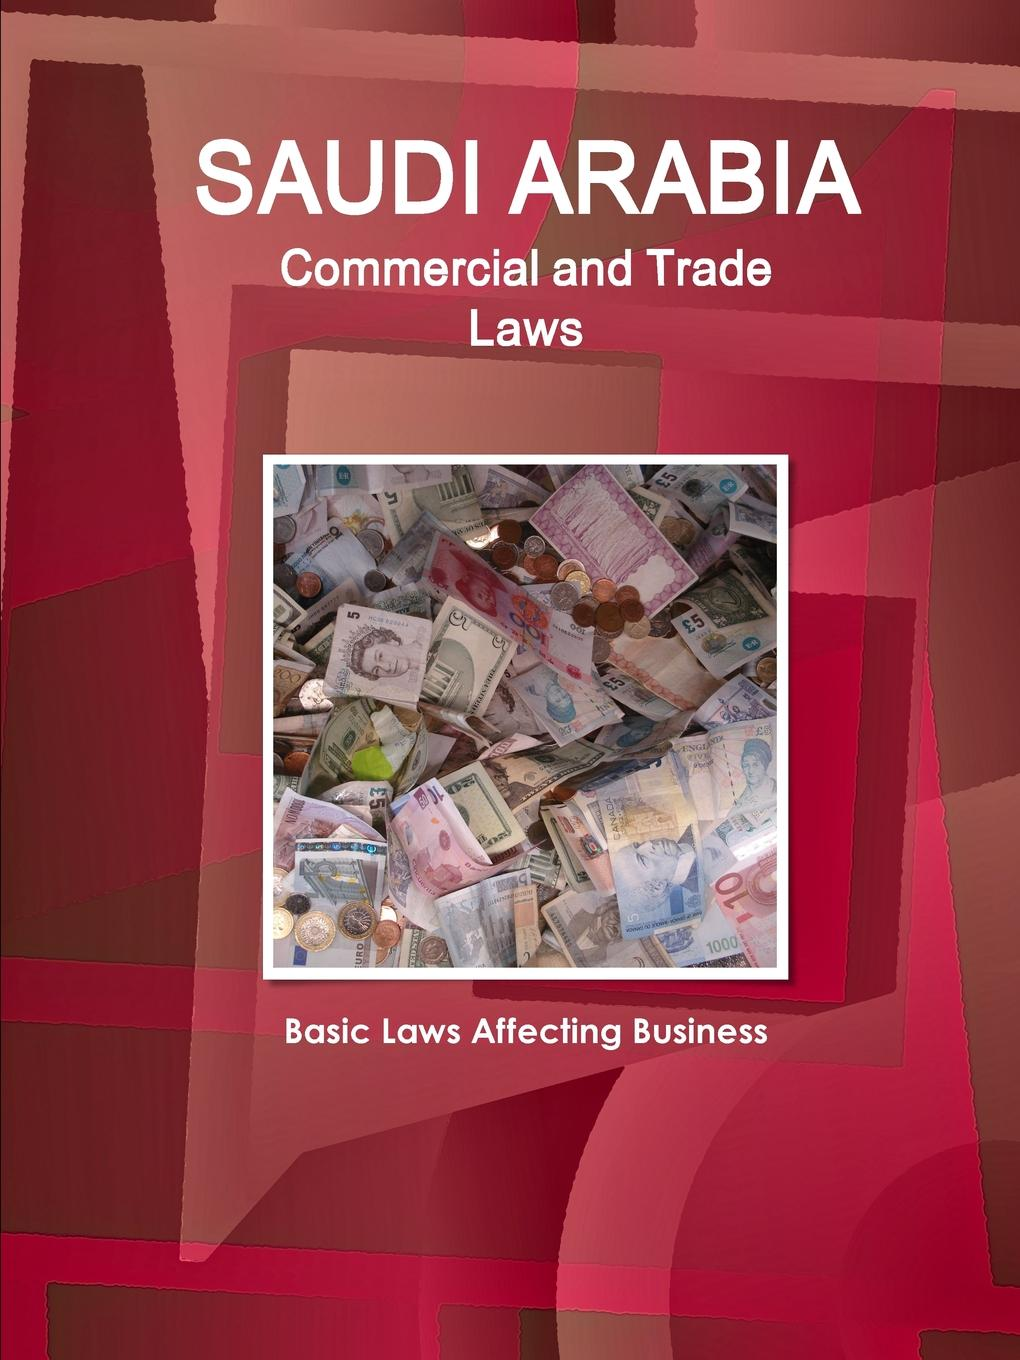 Saudi Arabia Commercial and Trade Laws - Basic Laws Affecting Business Saudi Arabia Commercial and Trade Laws - Basic Laws Affecting...